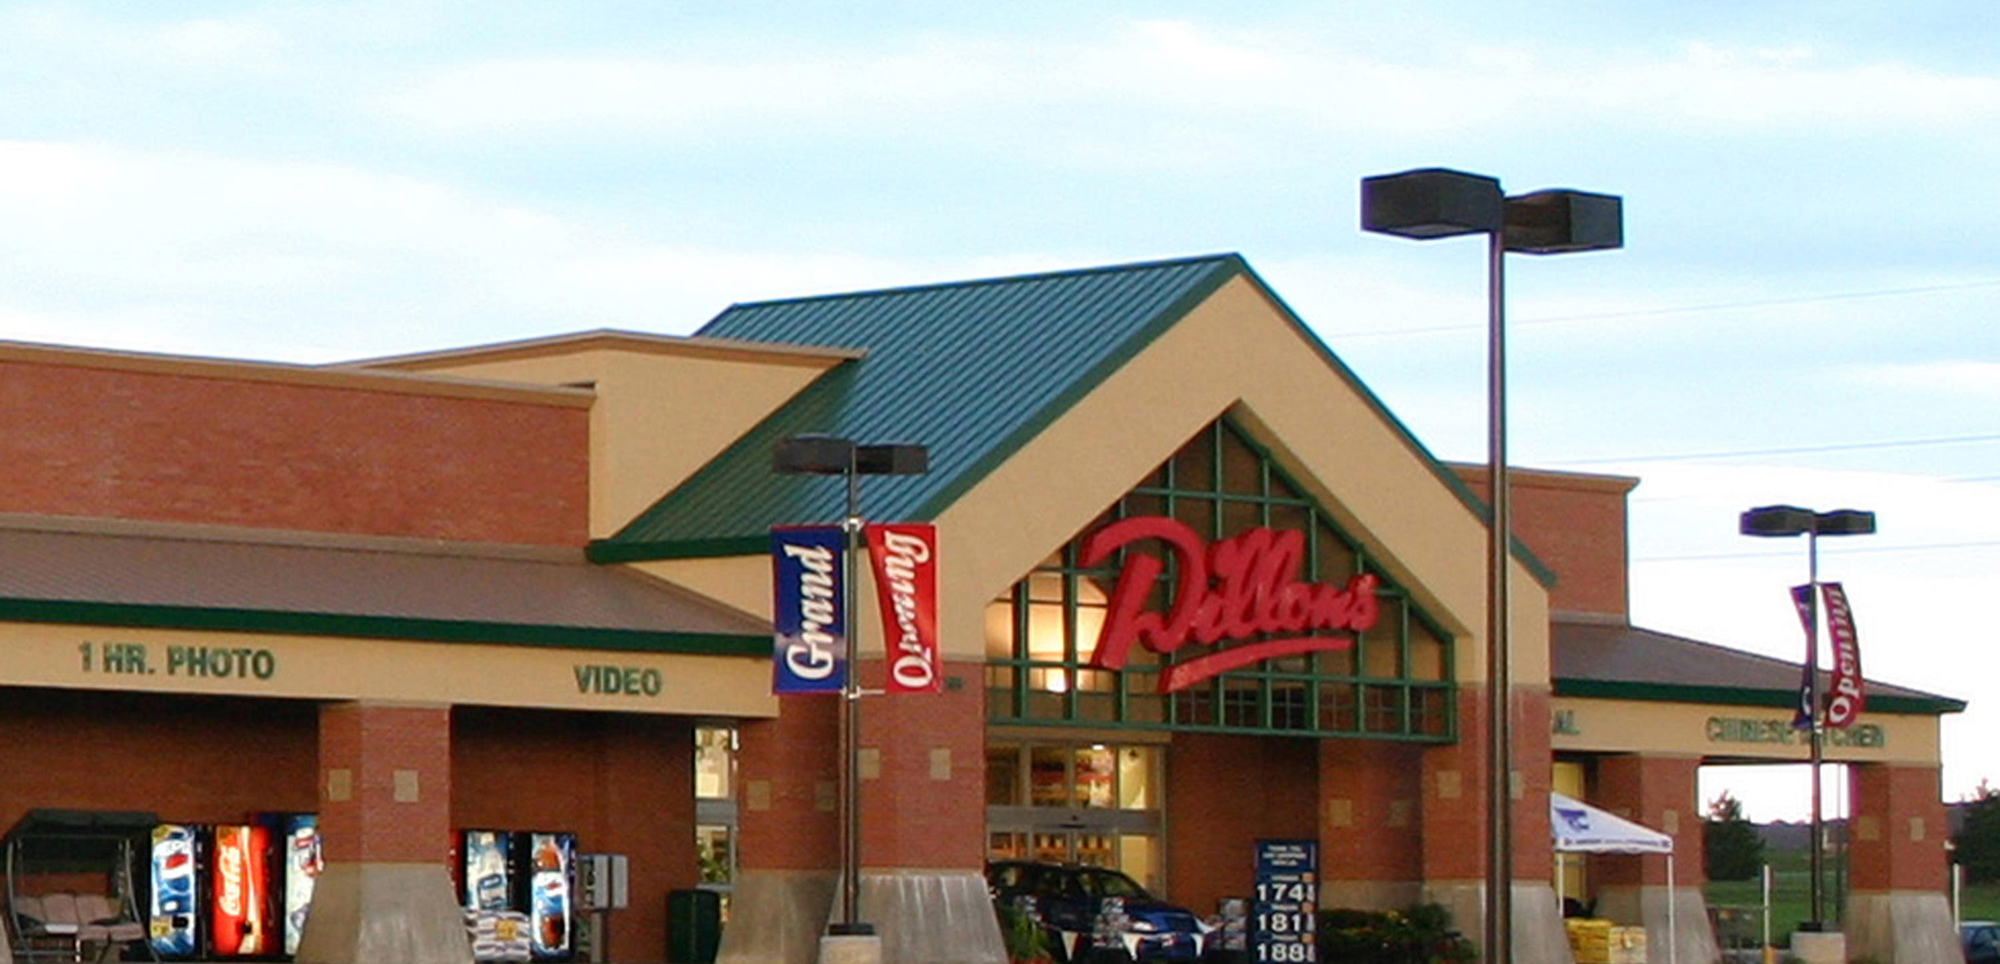 A photo of Dillons Grocery Store.